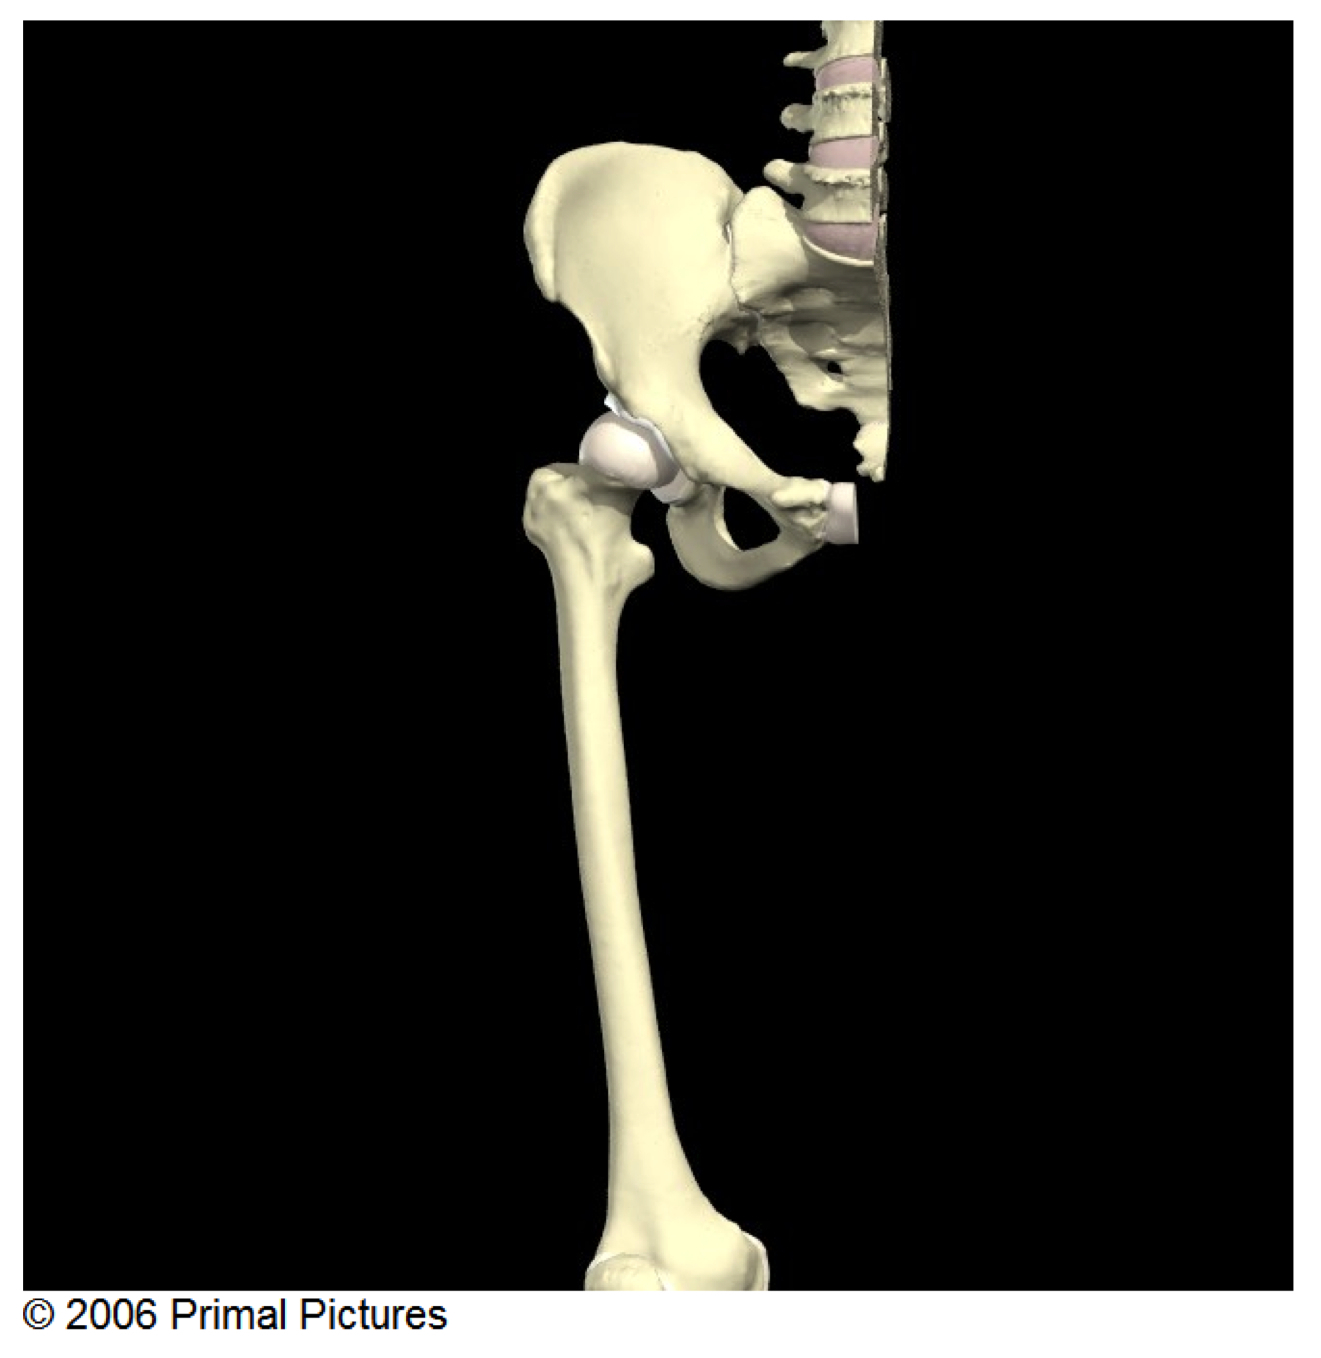 Front view of the right hip joint.